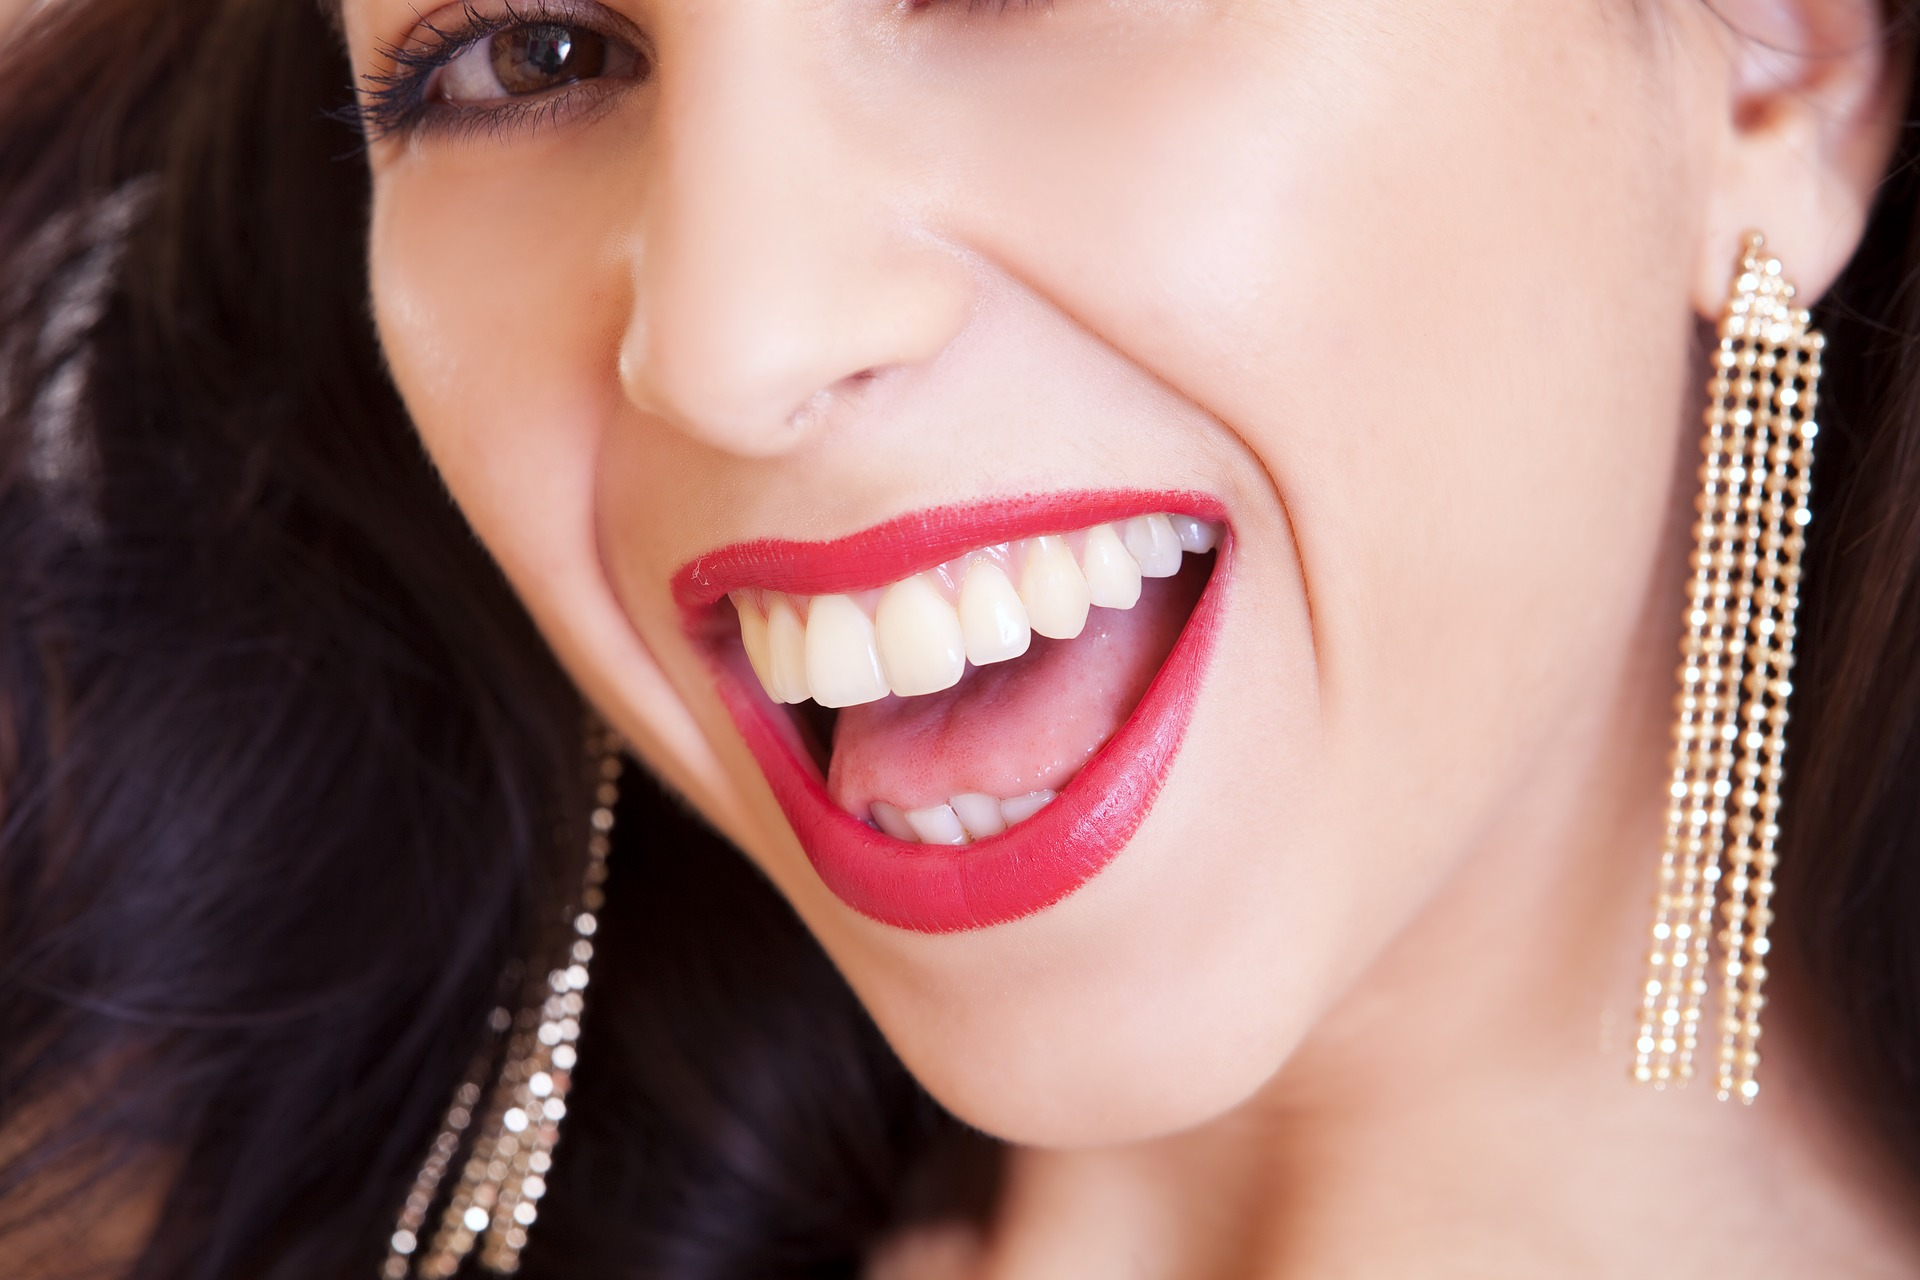 The Dangers of Teeth Whitening